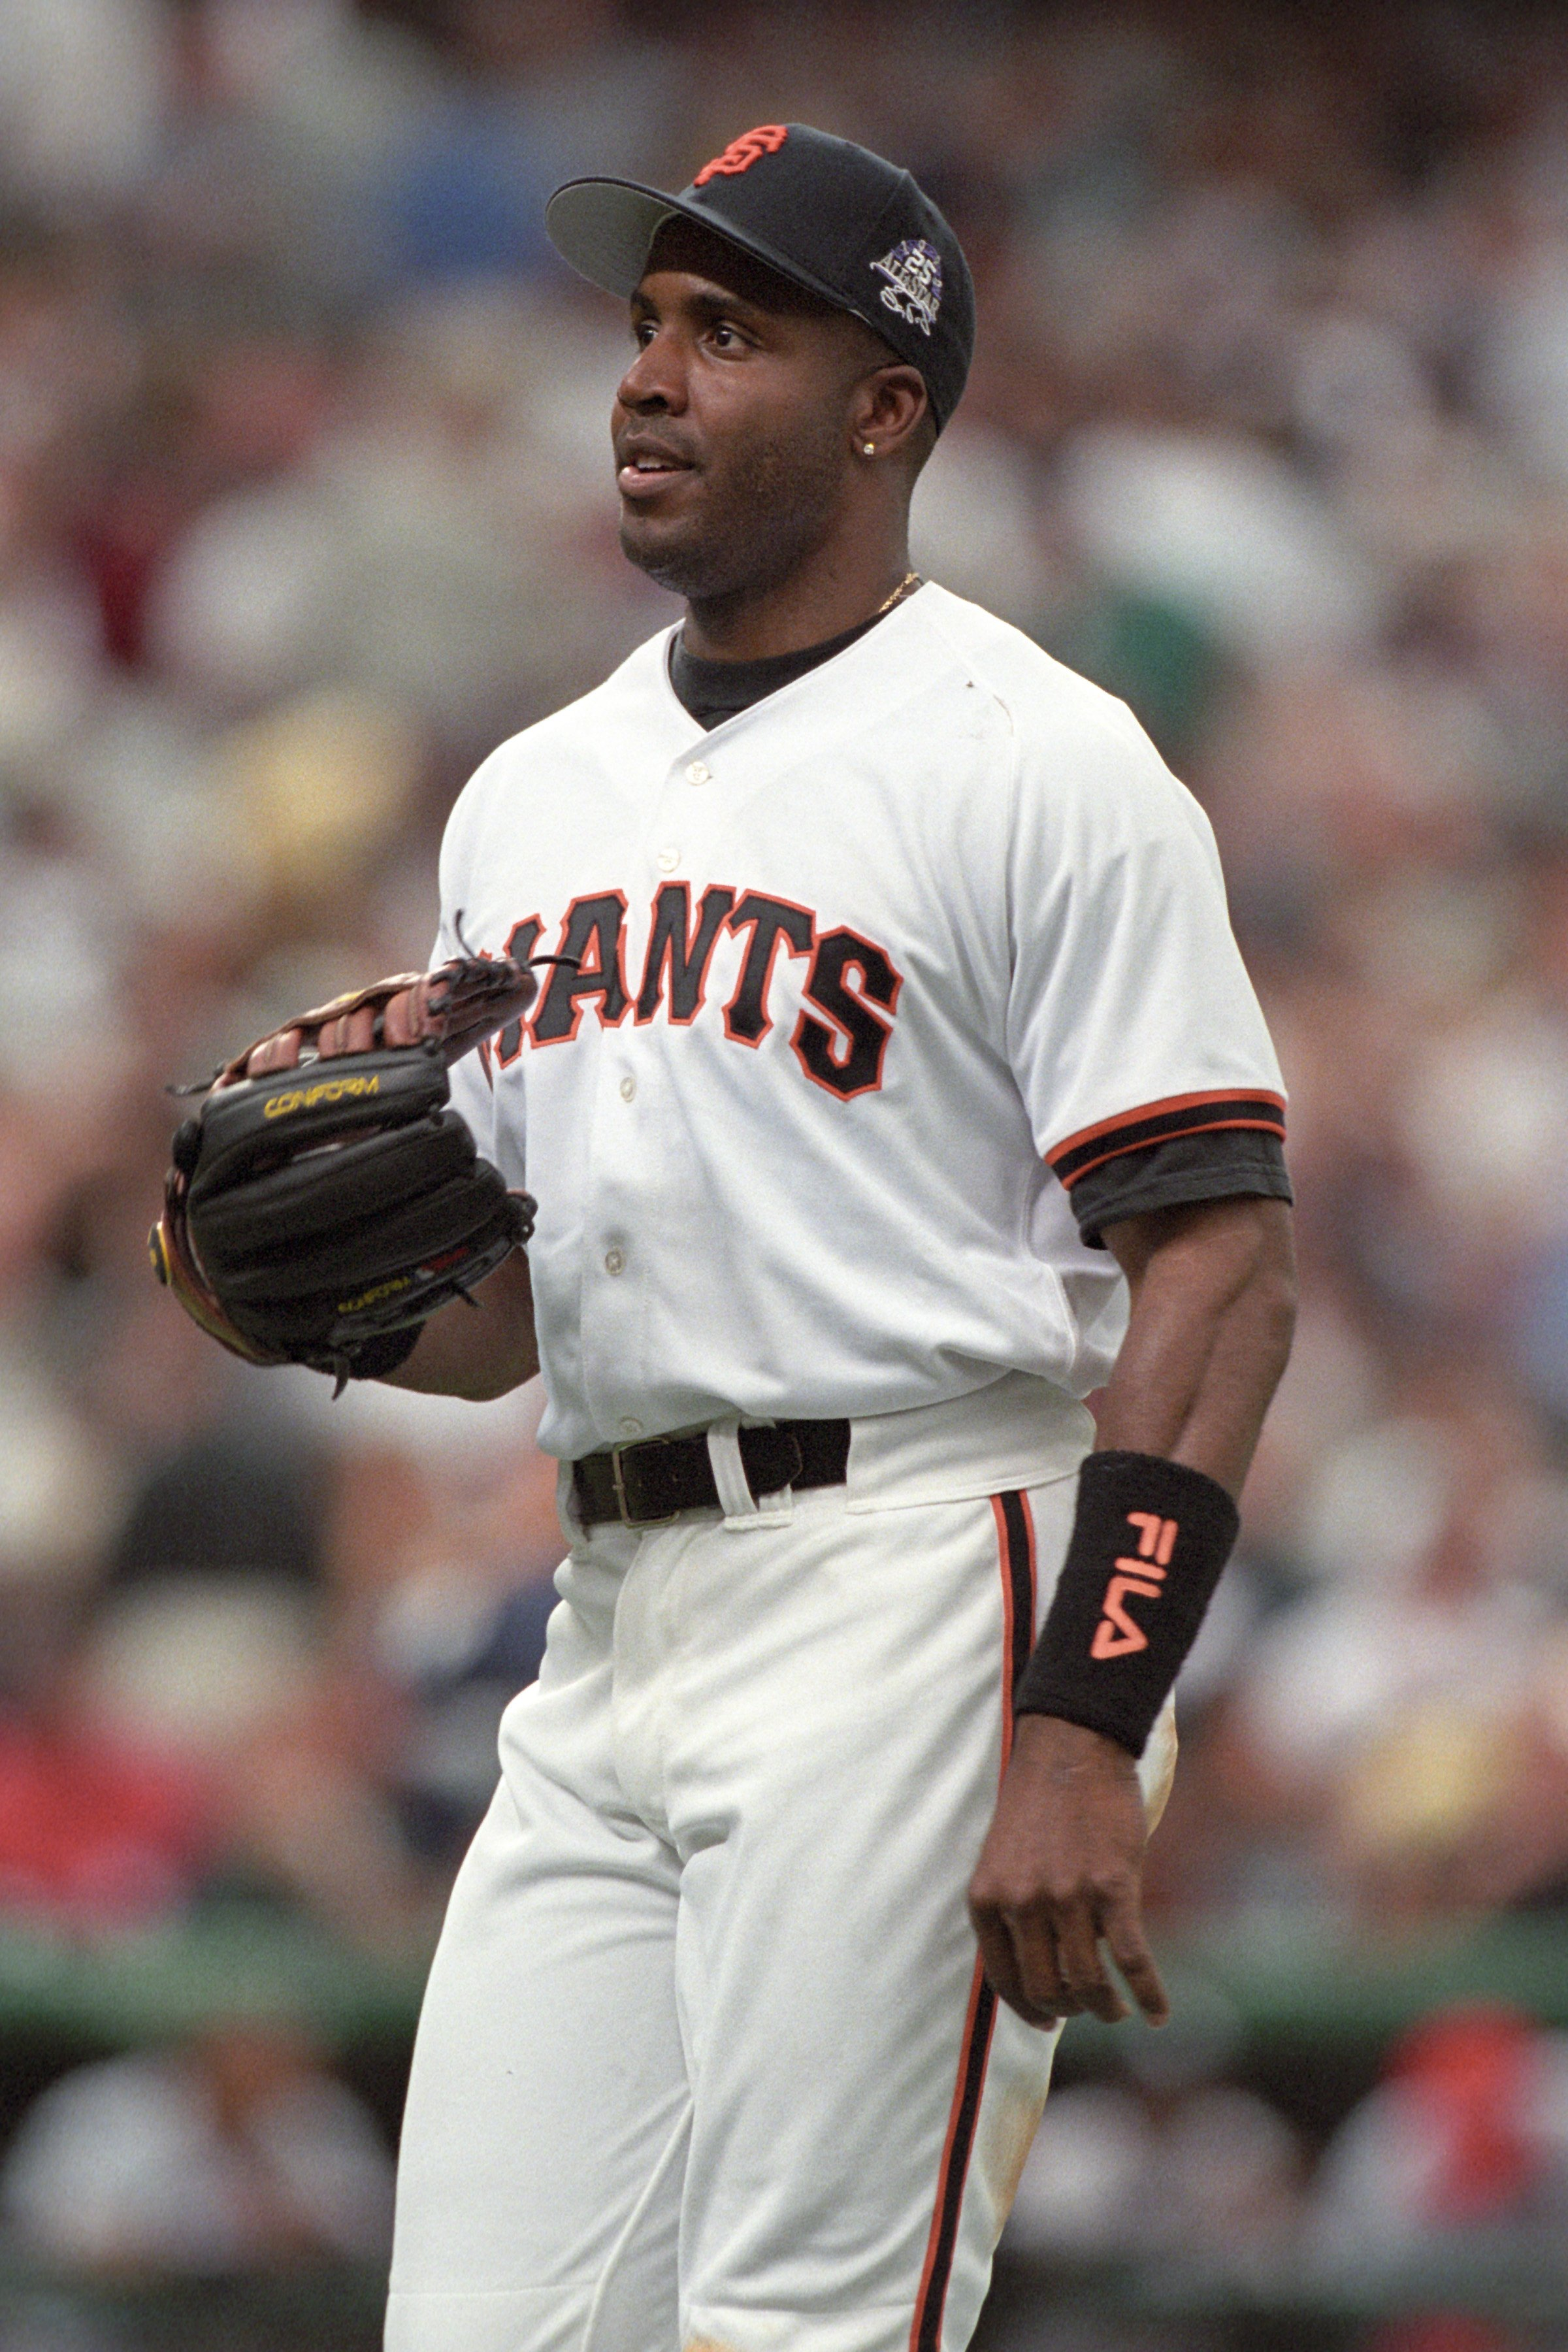 DENVER - JULY 7:  Barry Bonds looks on during the 69th MLB All-Star Game at Coors Field on July 7, 1998 in Denver, Colorado. (Photo by Brian Bahr/Getty Images)